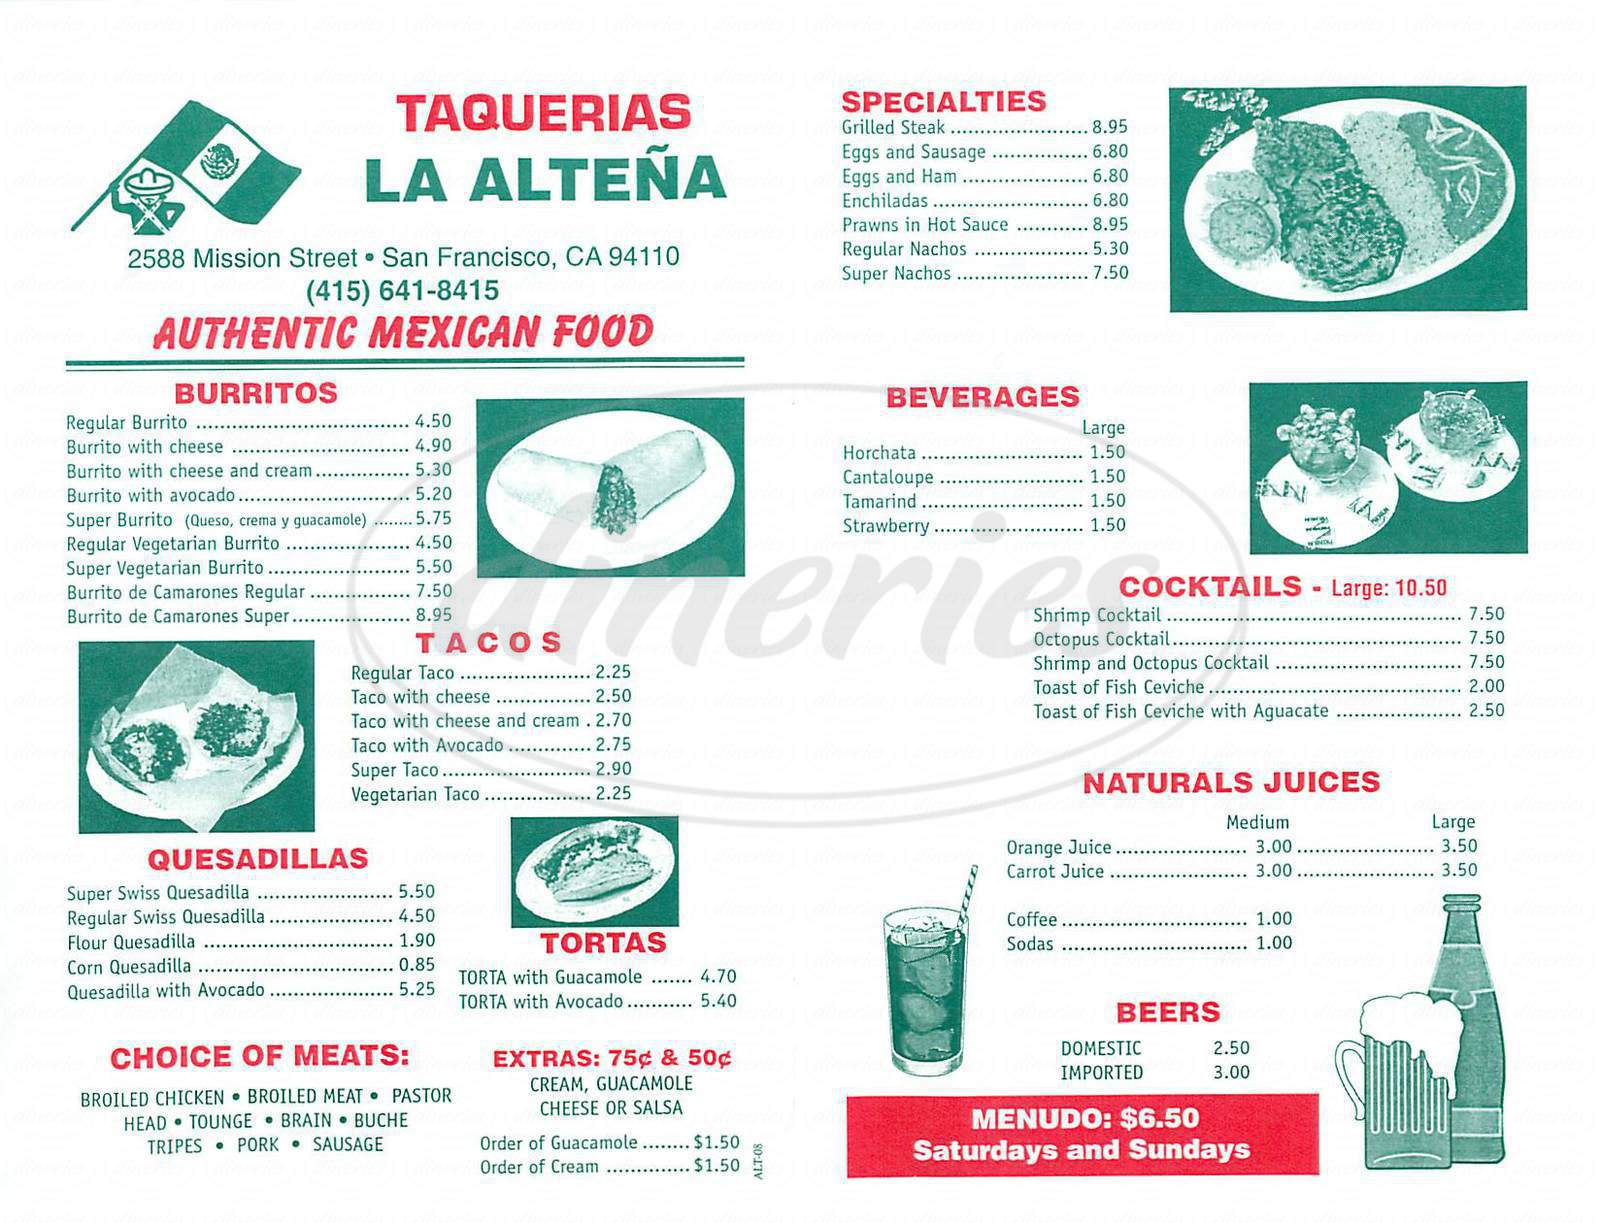 menu for La Altena Taqueria